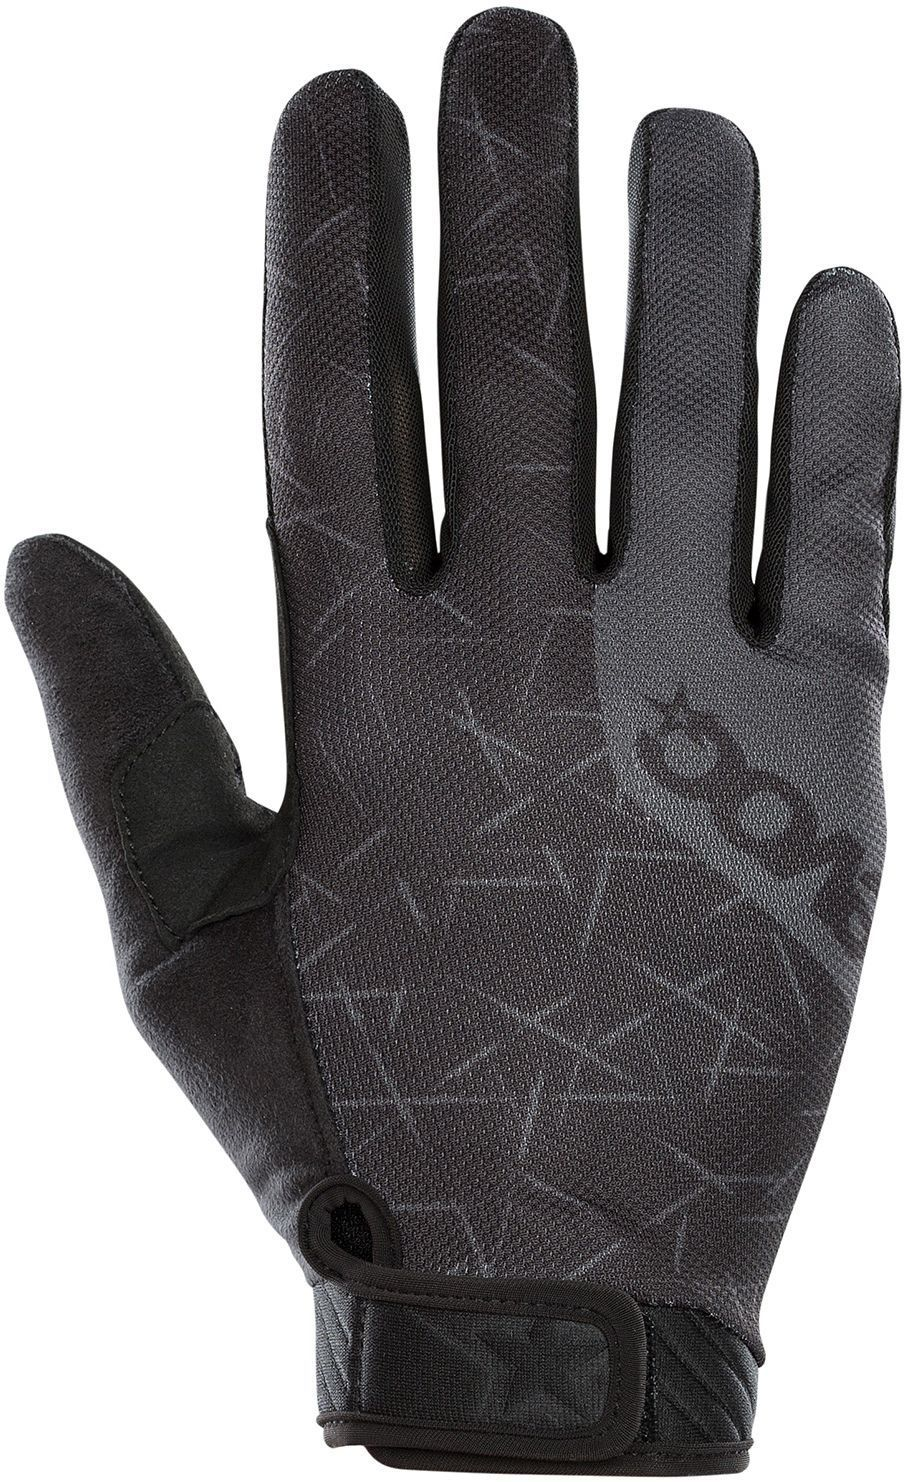 Evoc Enduro Touch Glove - black/carbon grey L